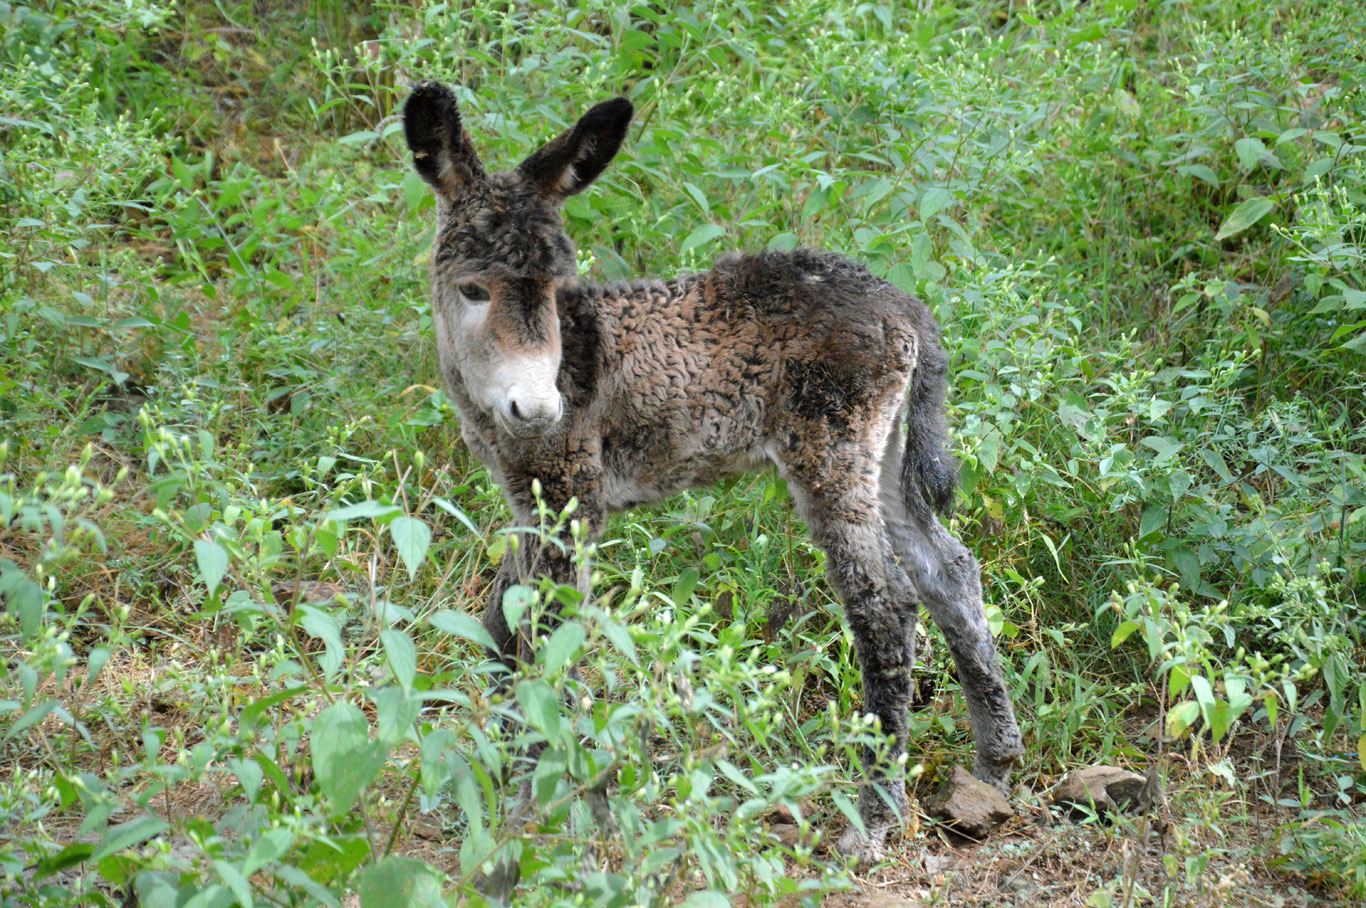 A common sight - little donkey